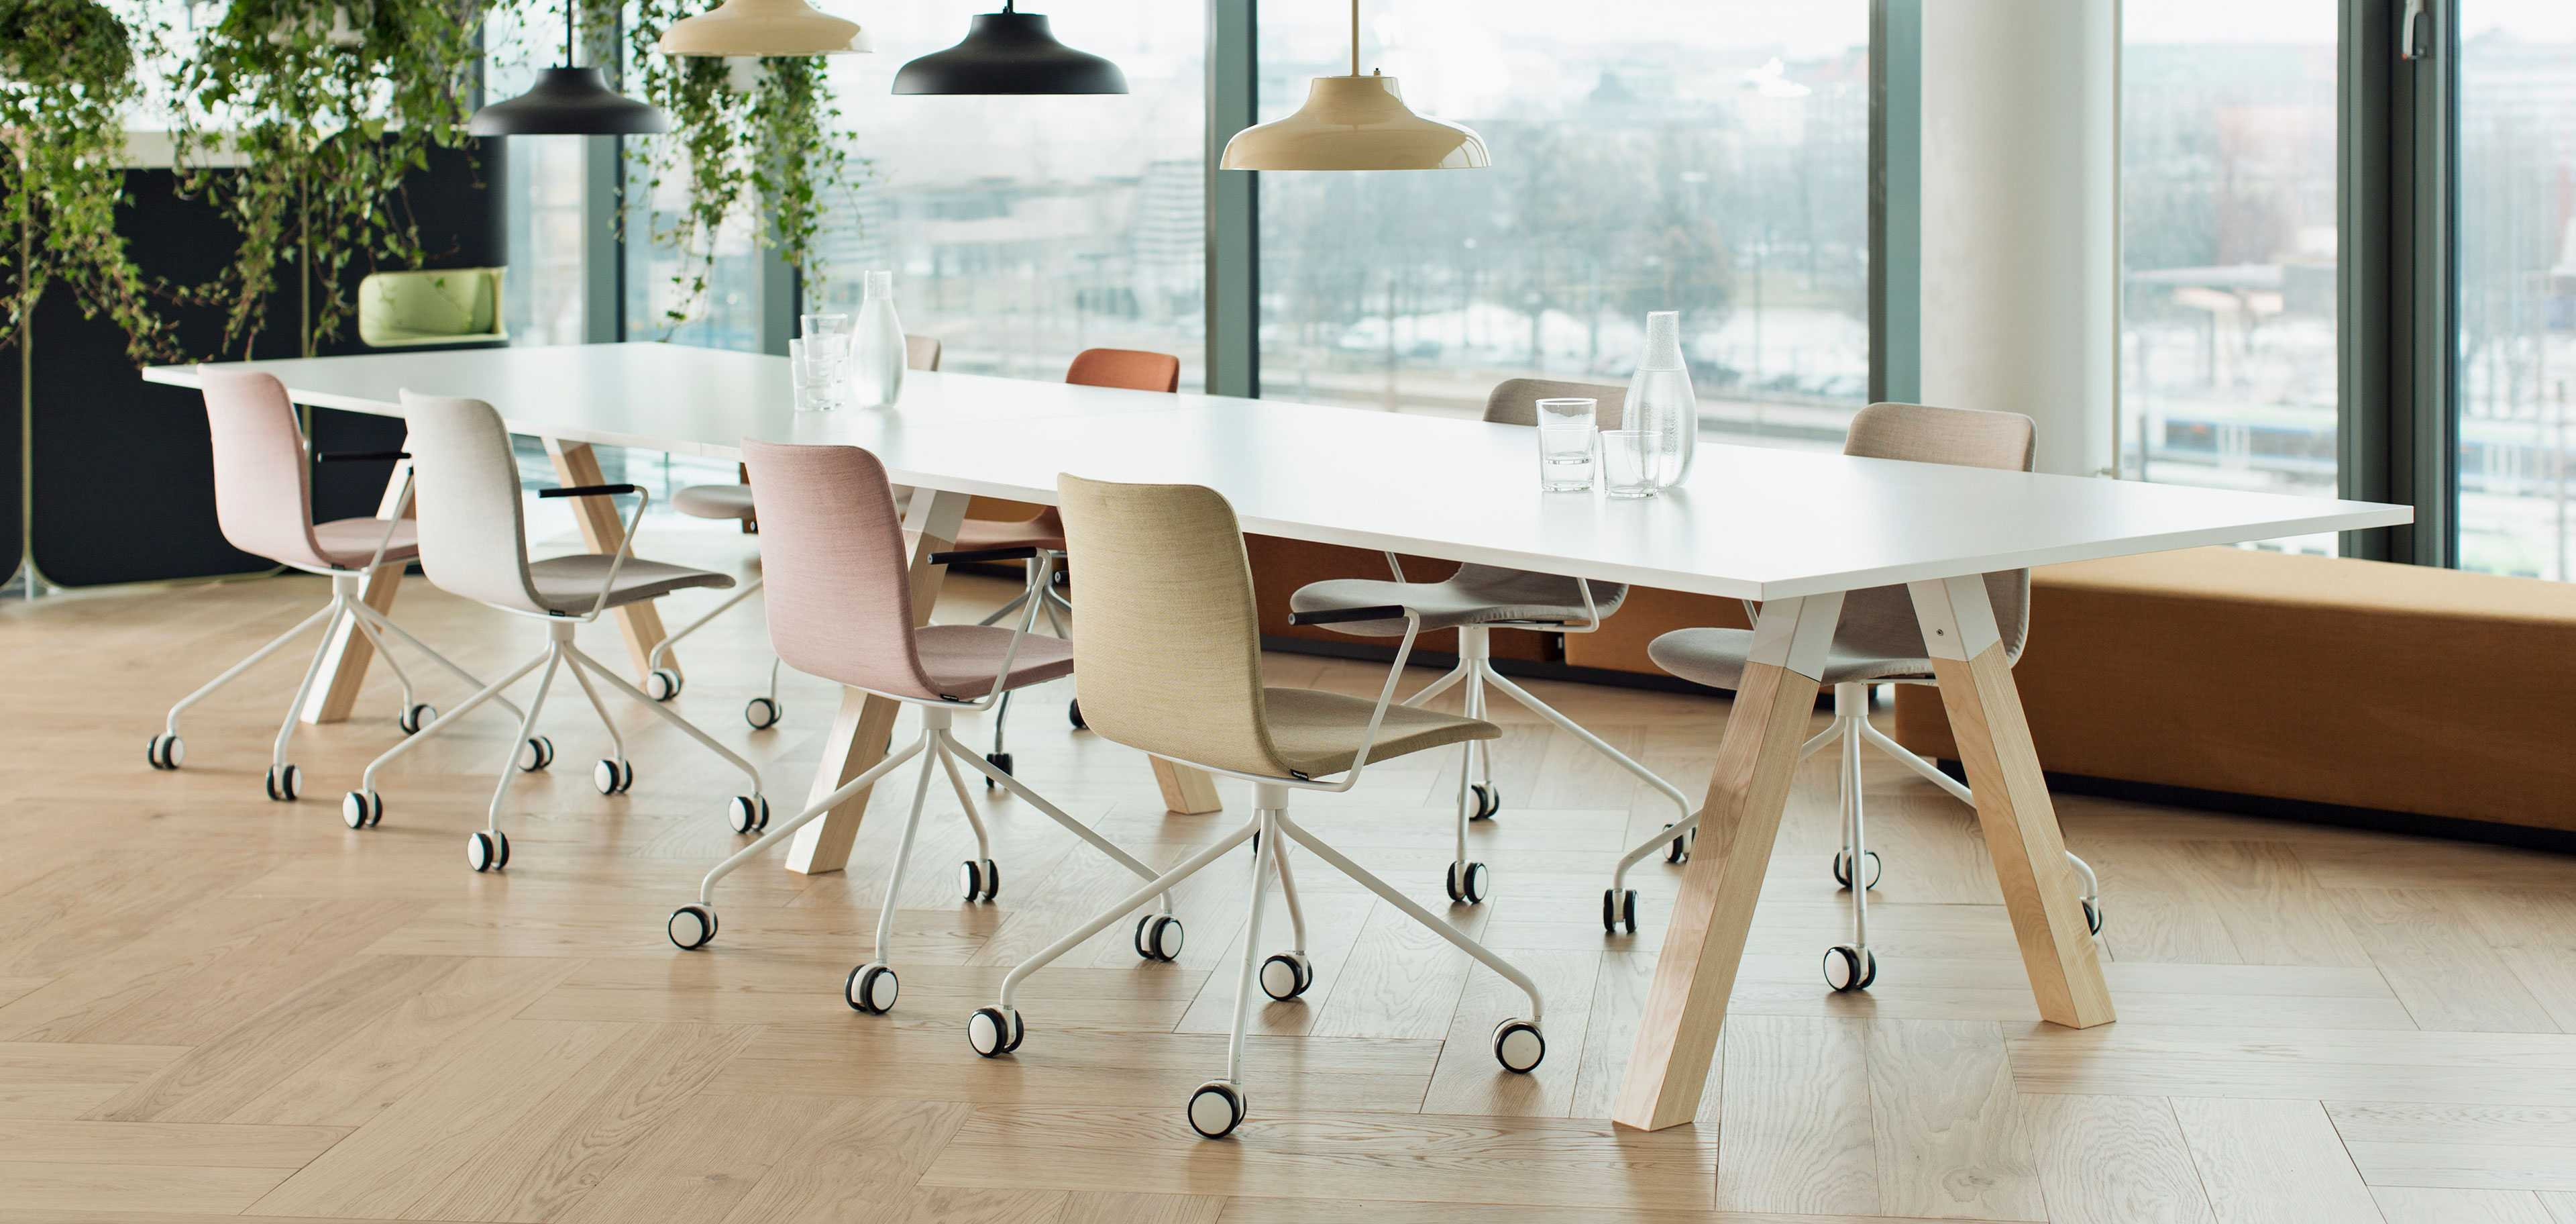 A conference table with chairs